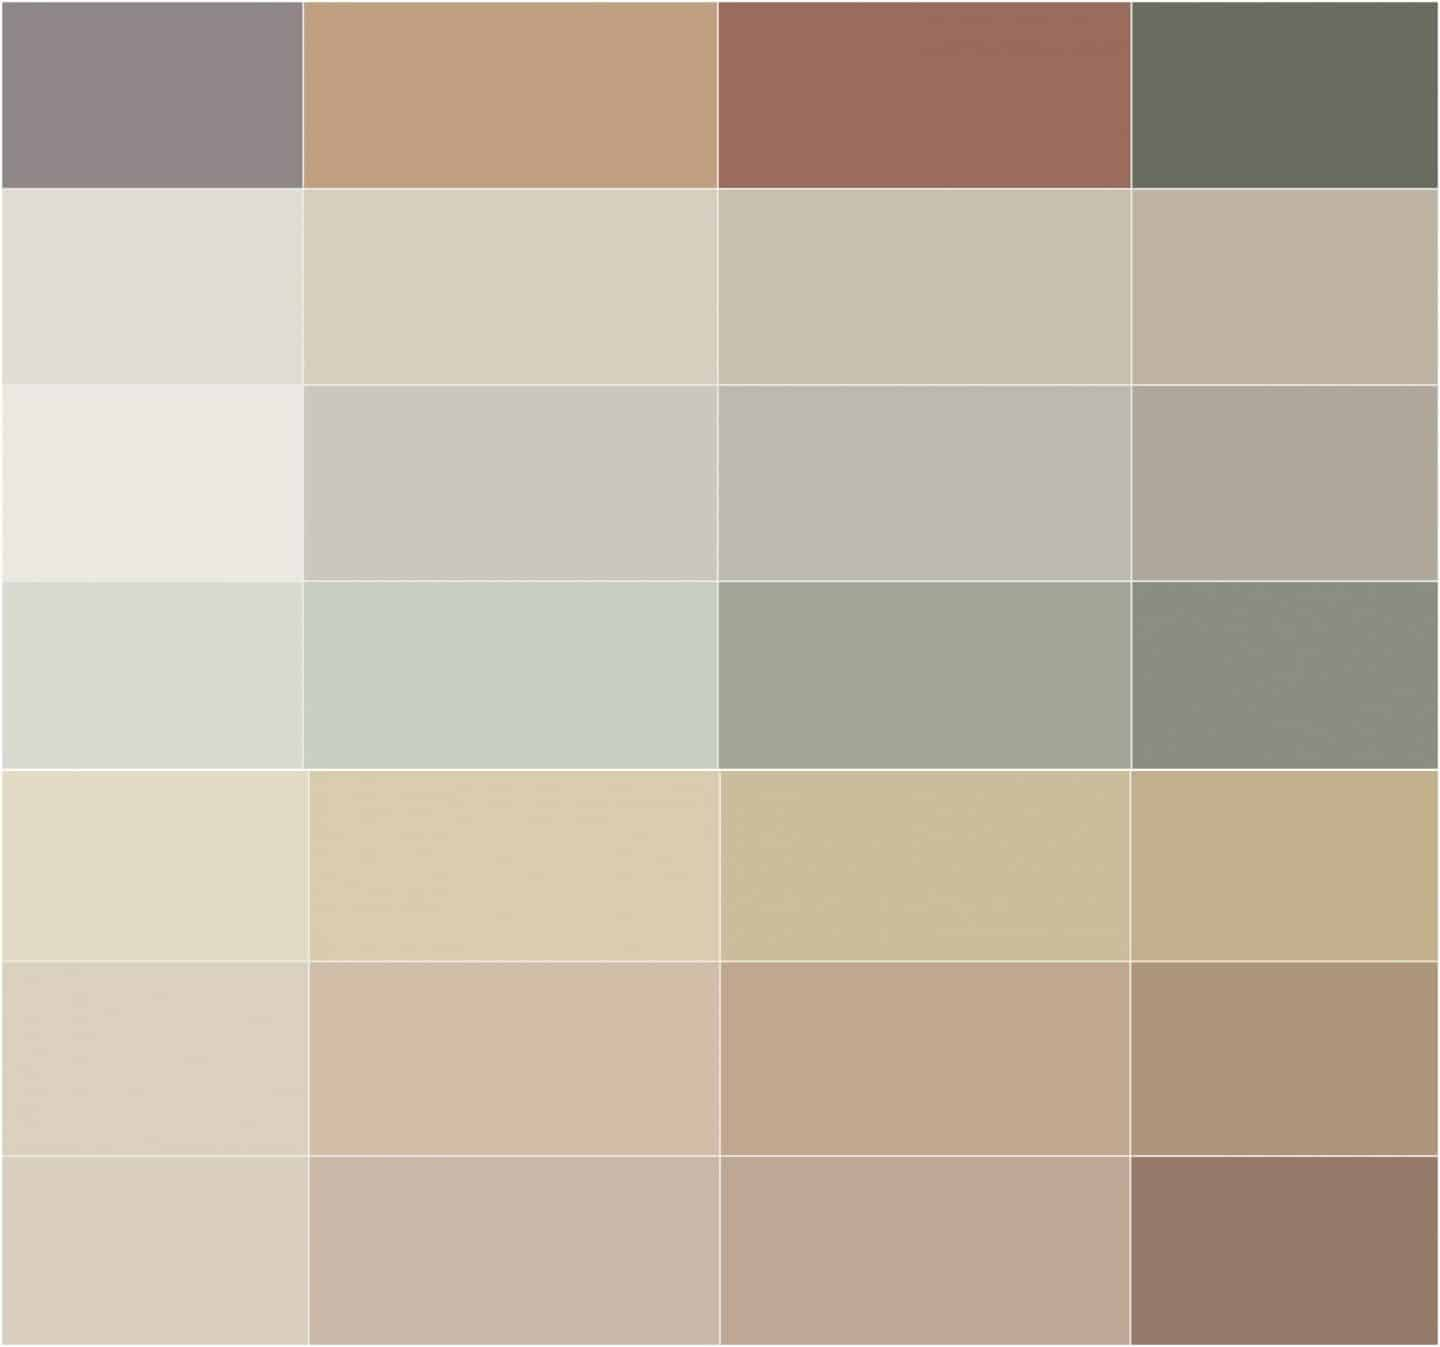 New Nordic Trend. The 2019 Lady Identity paint colour chart from Jotun.